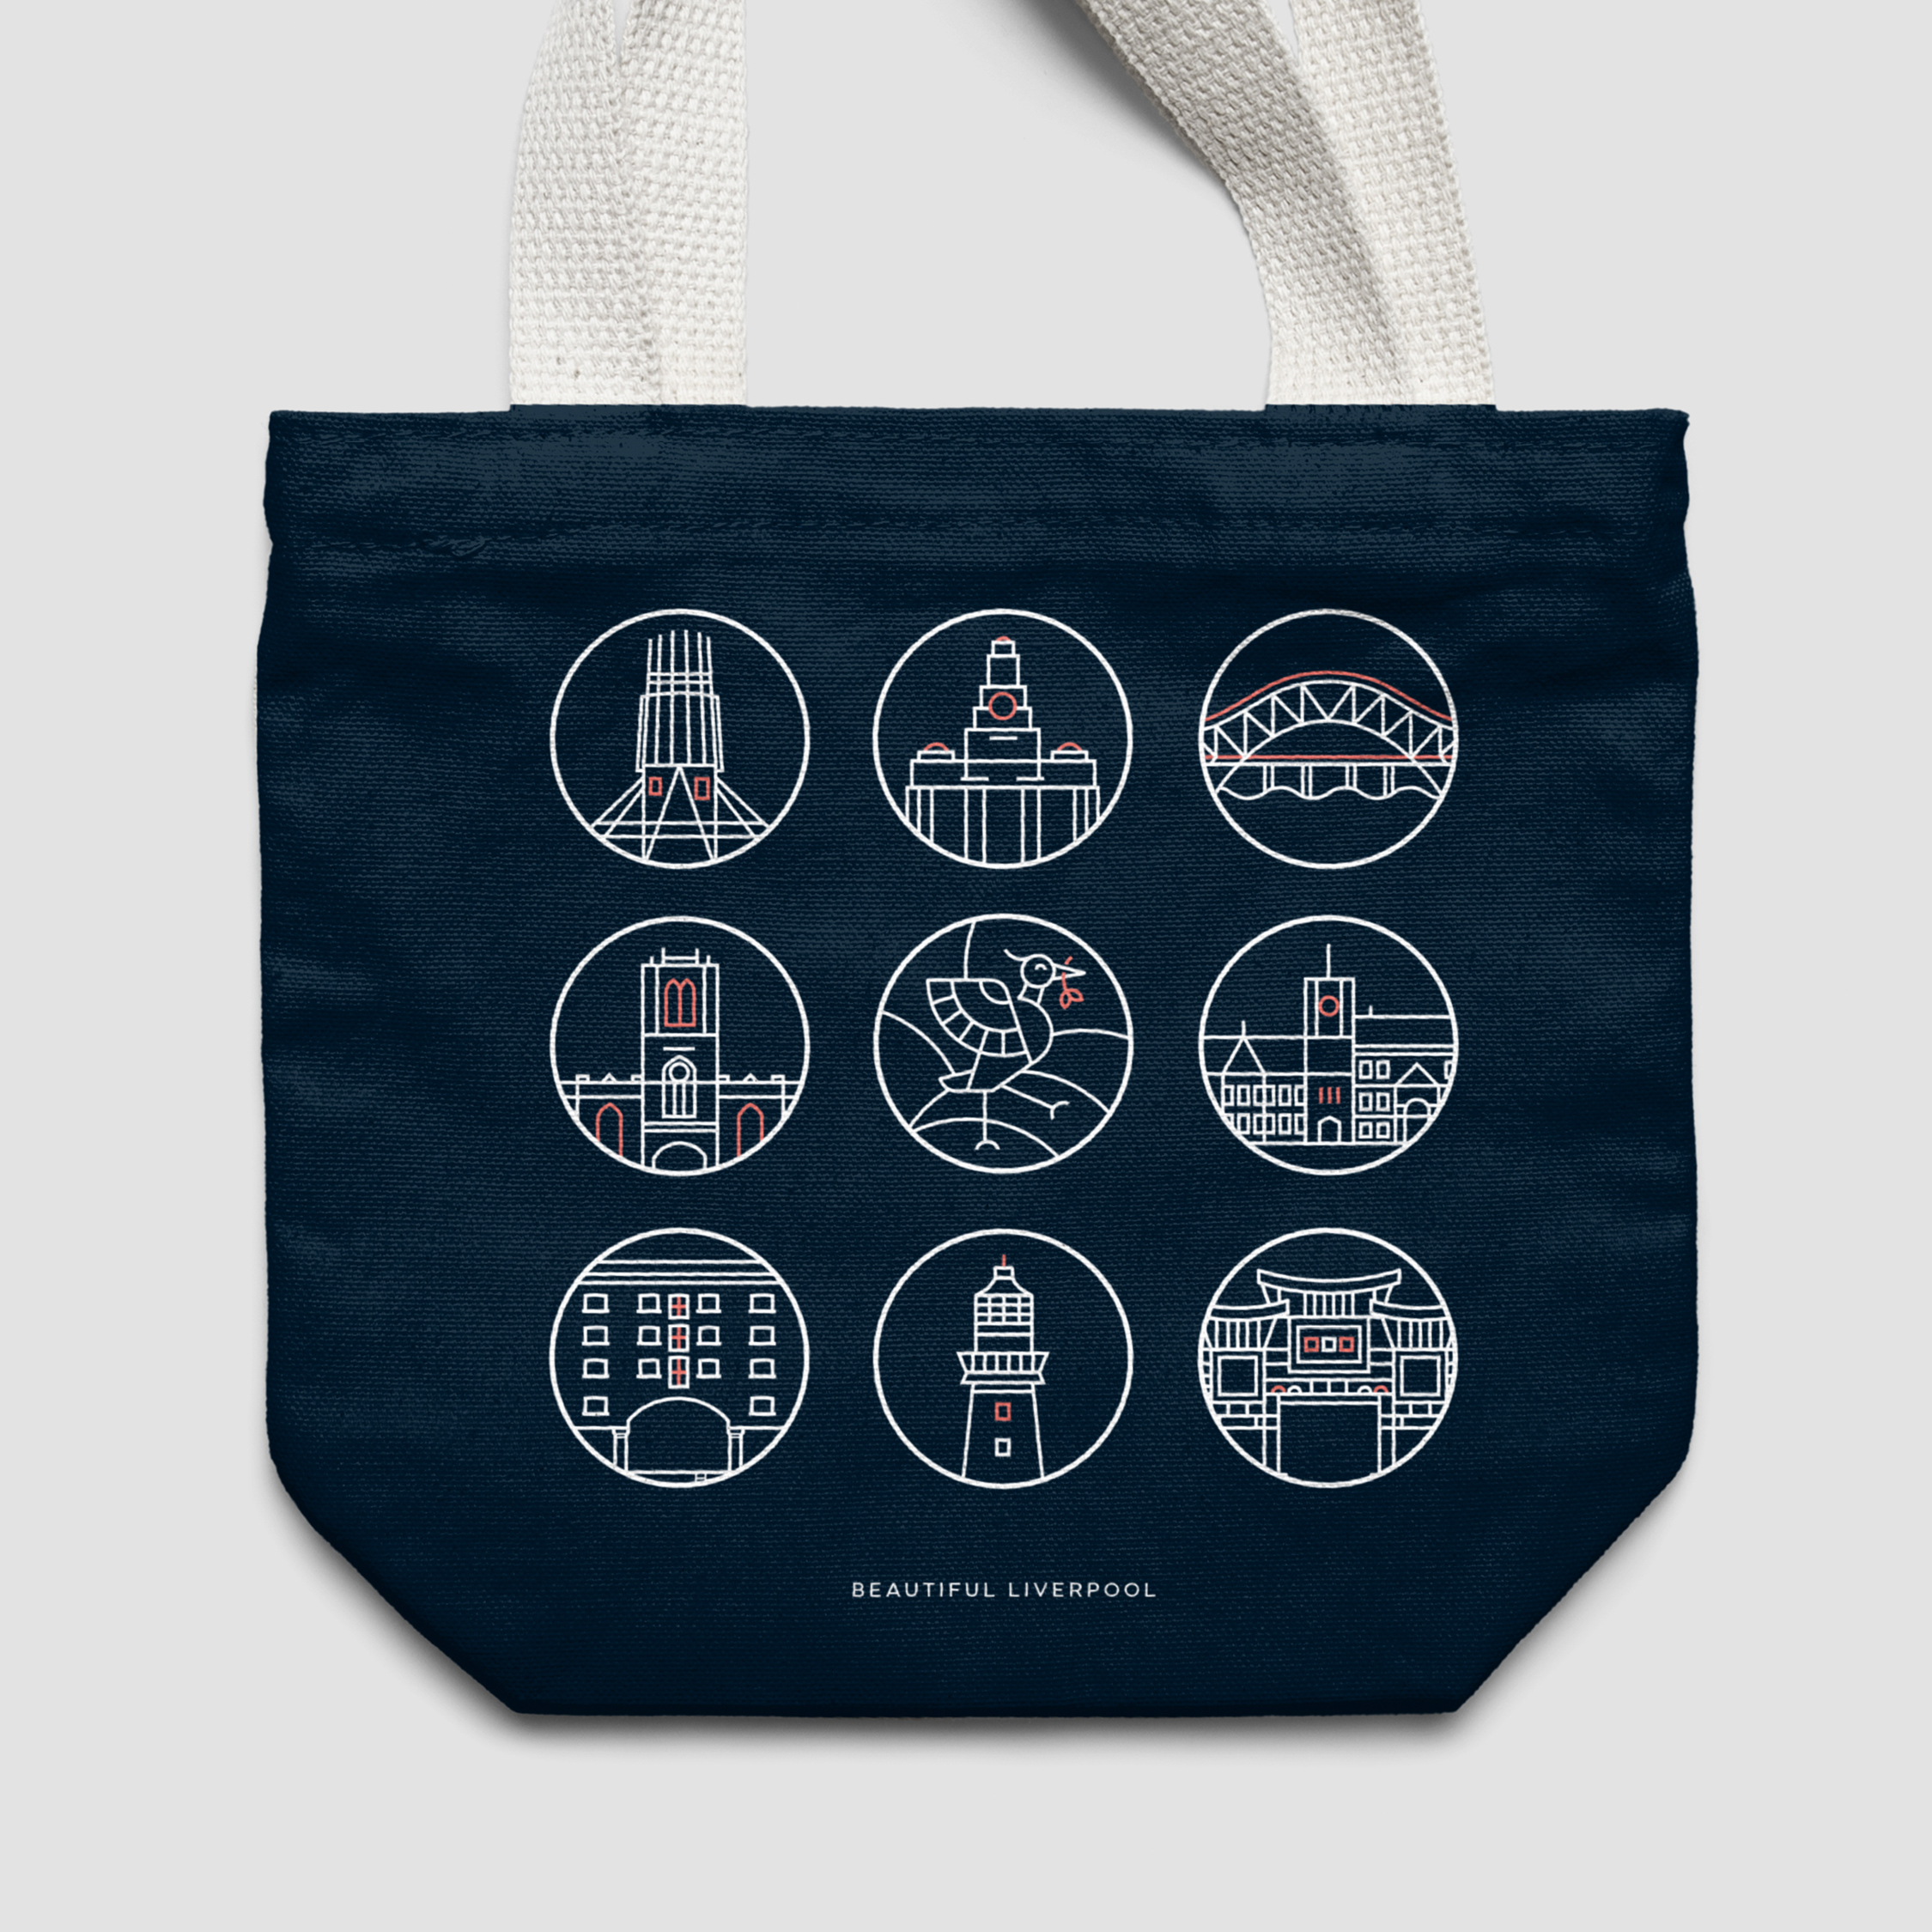 Beautiful Liverpool tote-bag